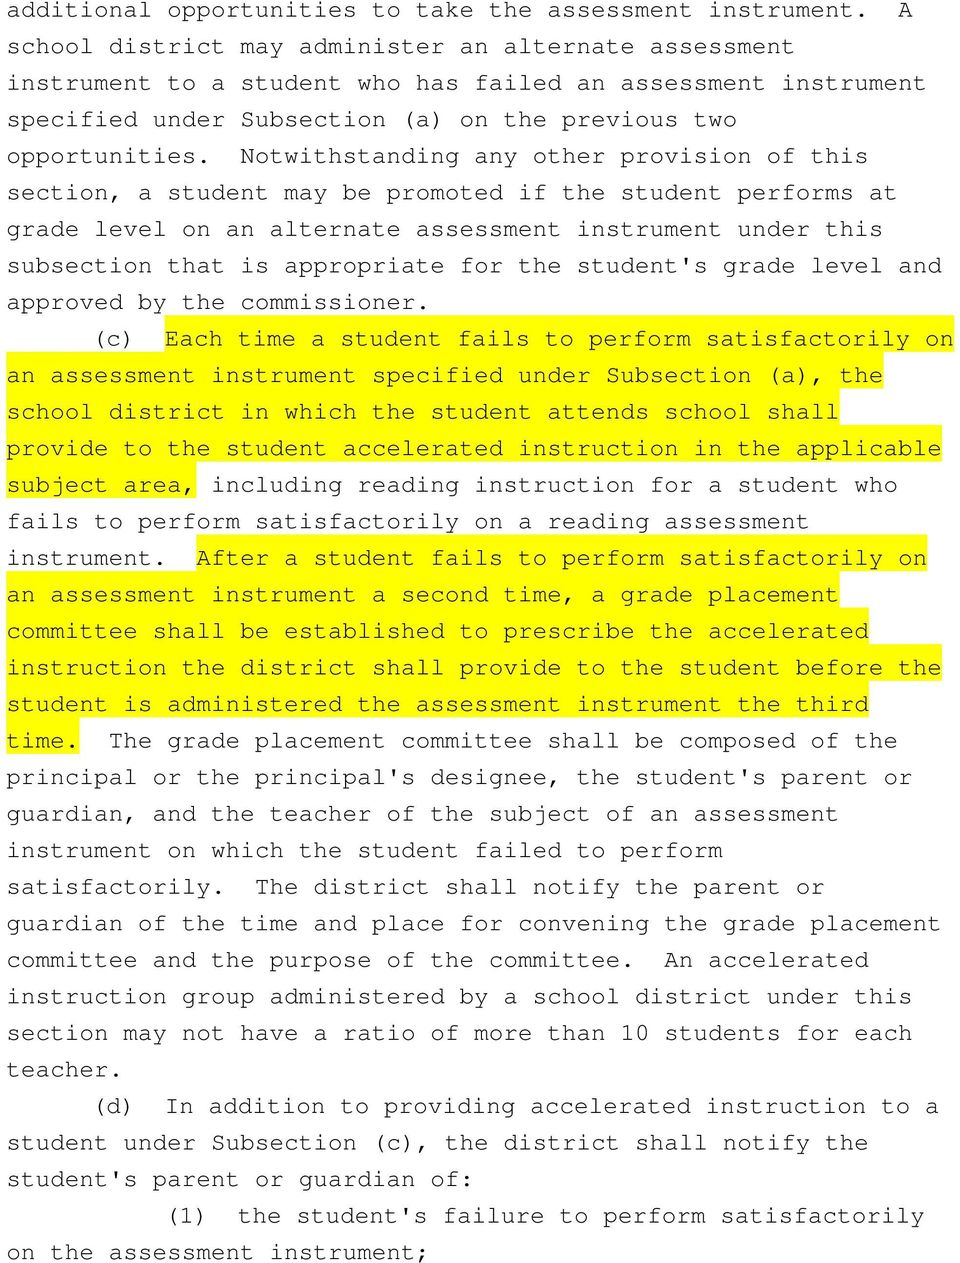 Notwithstanding any other provision of this section, a student may be promoted if the student performs at grade level on an alternate assessment instrument under this subsection that is appropriate